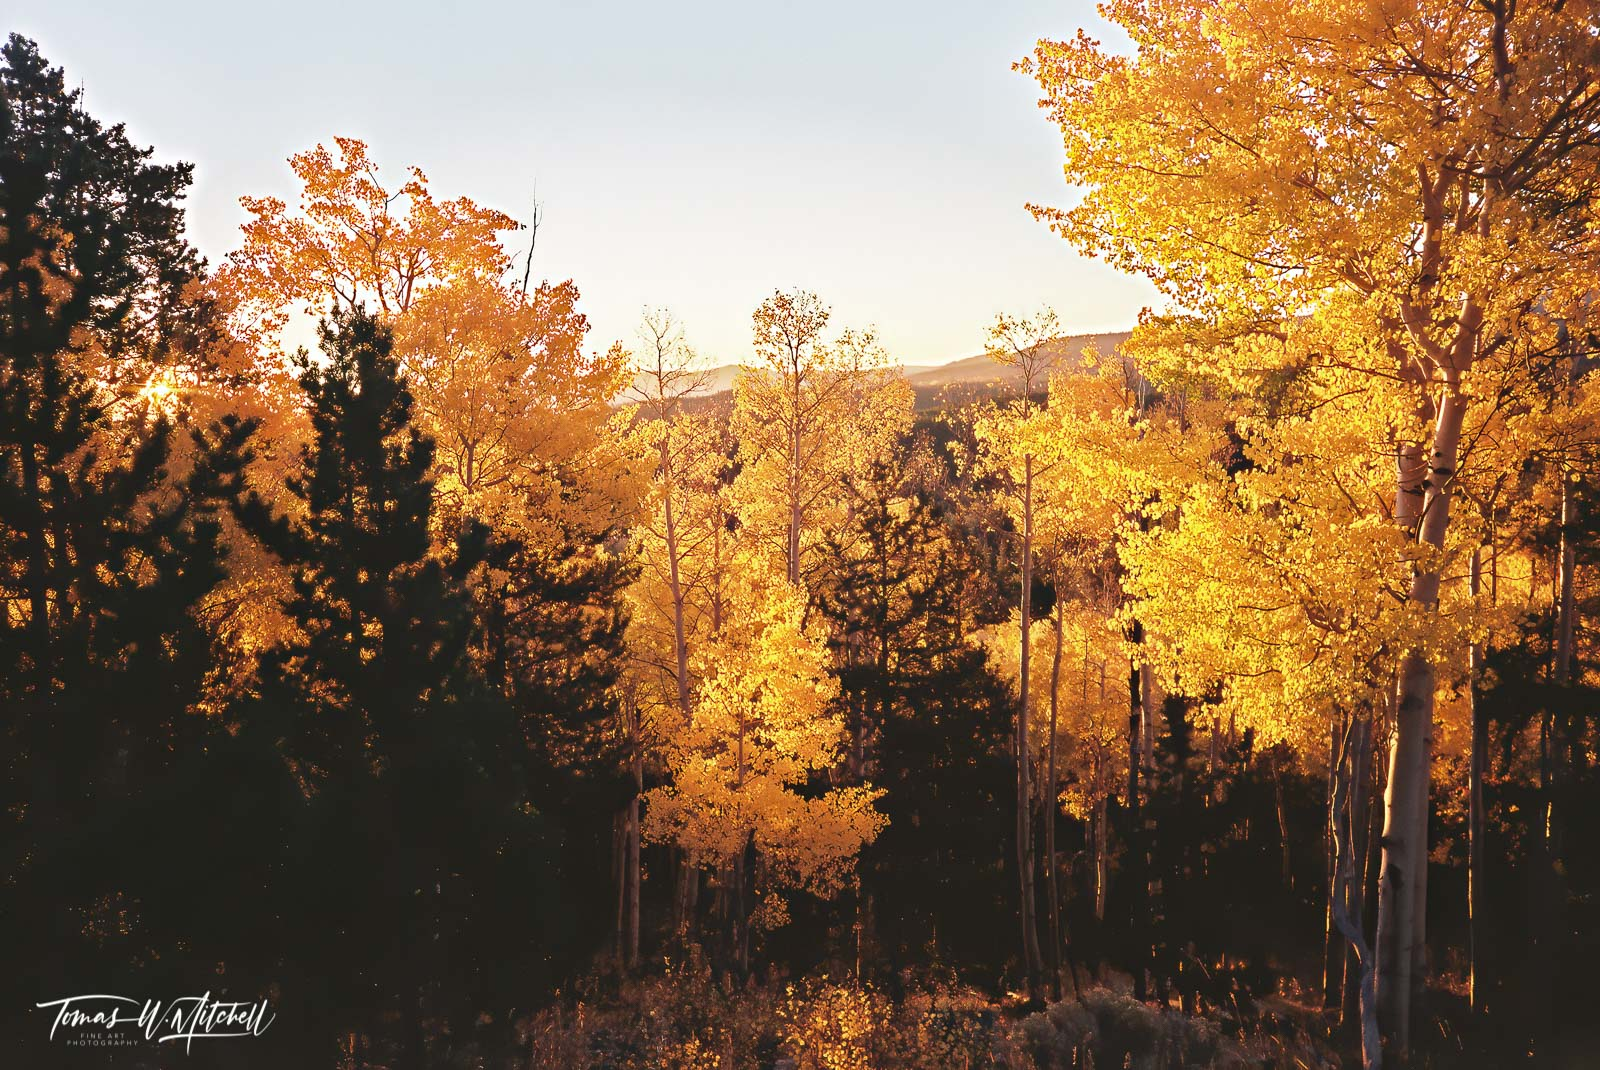 limited edition, fine art, prints, photograph, film, autumn, sunrise, morning, forest, golden, quaking aspens, pine trees, trees, branches, photo